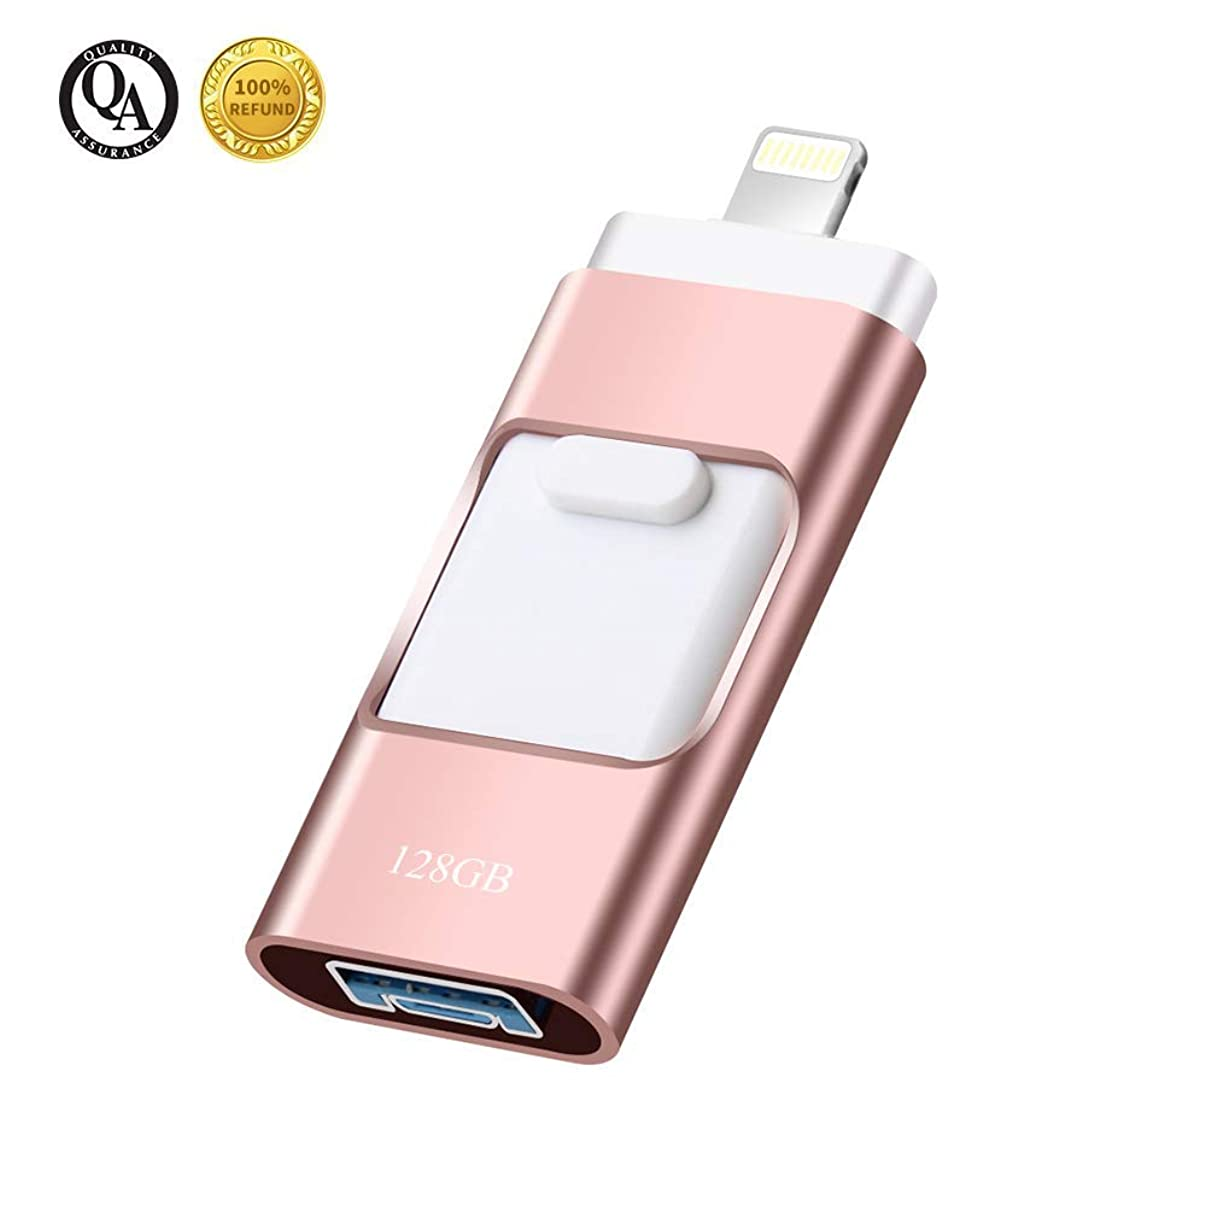 USB Flash Drive 128GB, USB 3.0 Memory Stick 128GB Data Storage External Flash Drive 3-in-1 Retractable Thumb Drives Jump Drives for iOS Phone/Android/PC (128GB Pink)